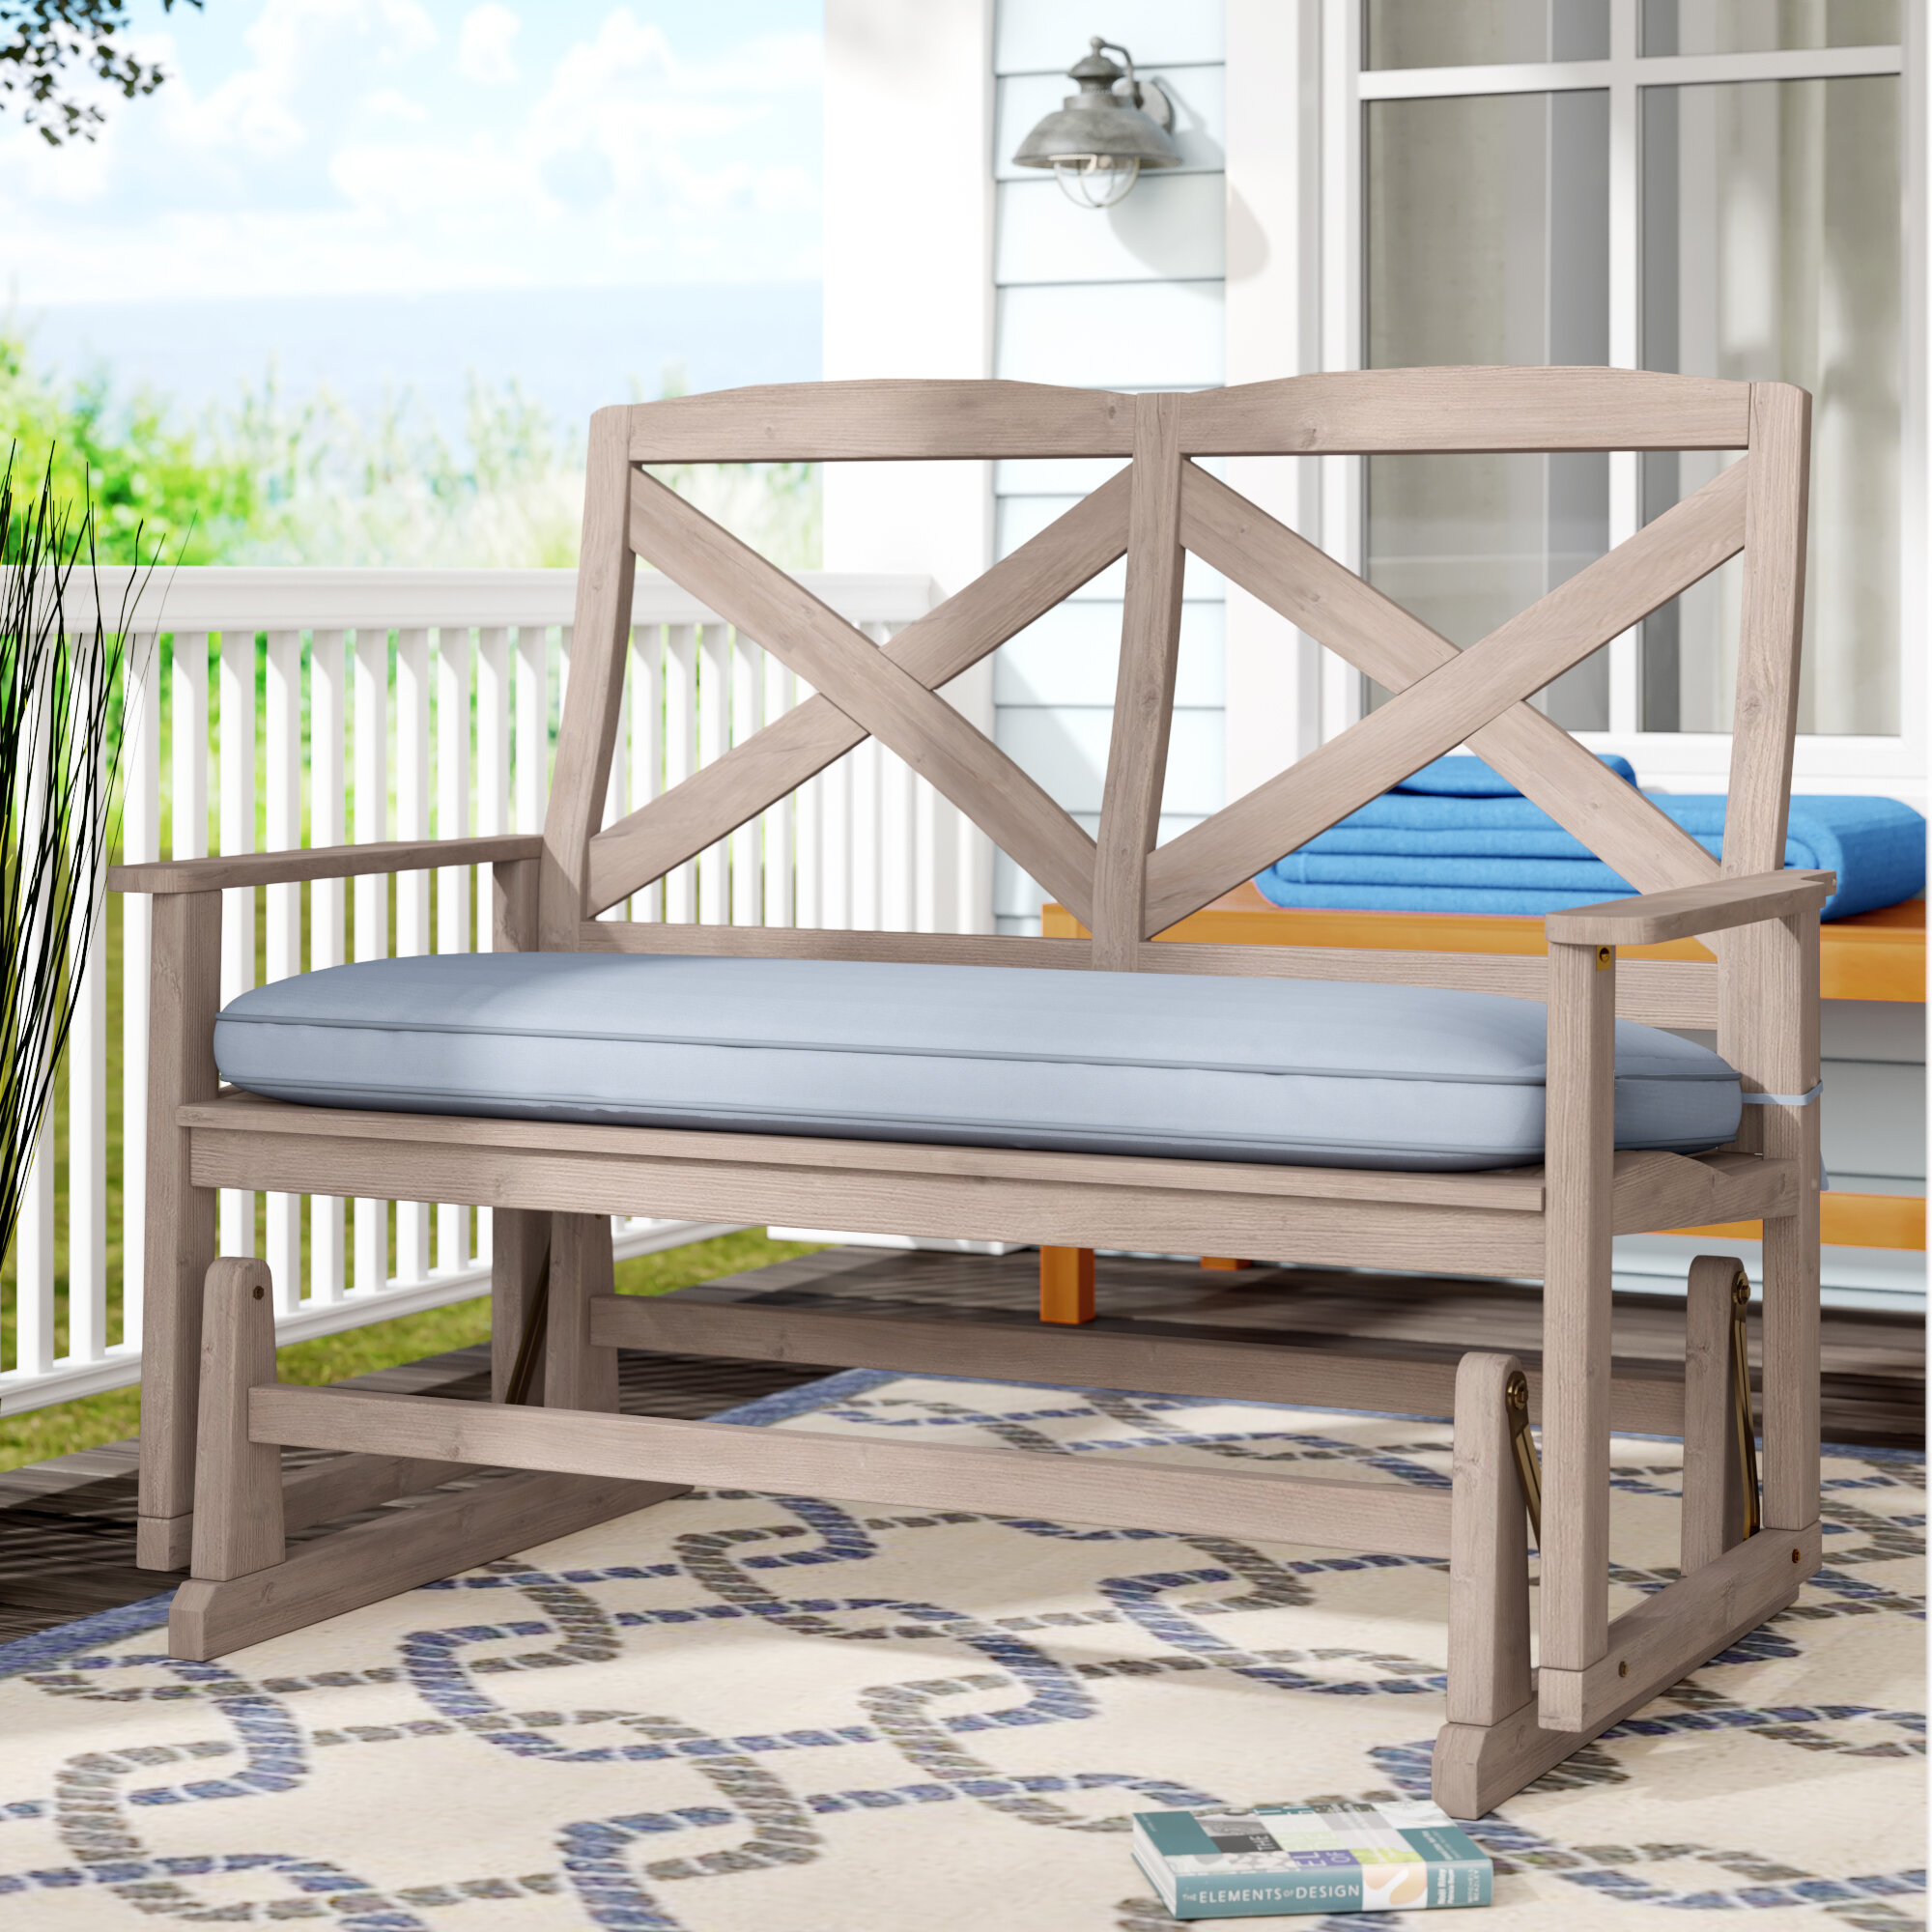 Beachcrest Home Englewood Glider Bench With Cushion Within 2 Person Natural Cedar Wood Outdoor Gliders (Image 7 of 25)